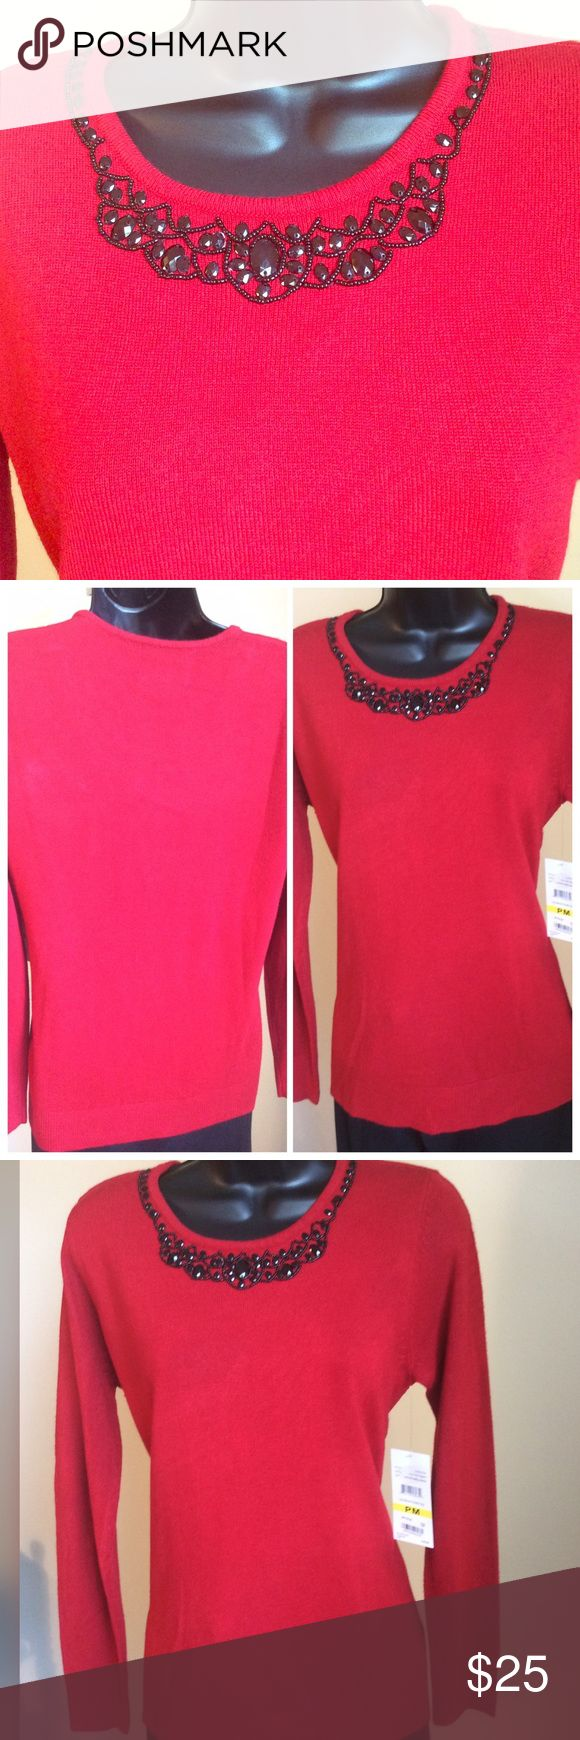 "Debbie Morgan Red Petite Sweater  Beautiful red sweater with black stone embellishments. Measures 20"" across the chest and 25"" long. Purchased from Macys but never worn. Debbie Morgan Sweaters Crew & Scoop Necks"